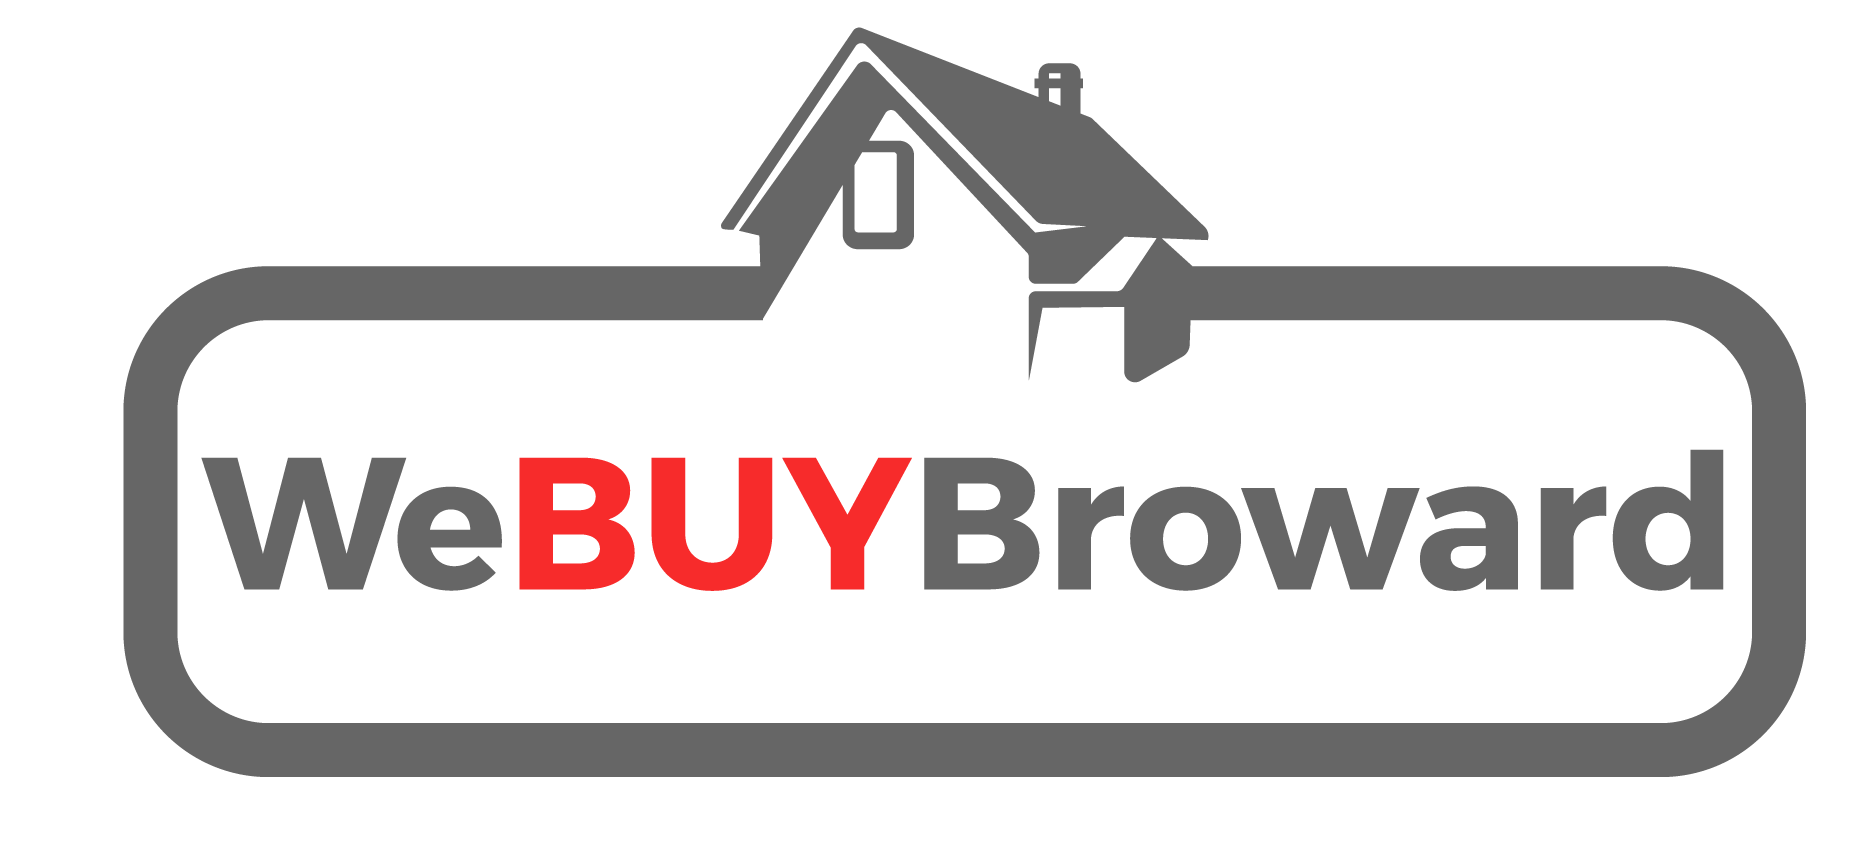 We Buy Broward Blog | We Buy Houses Cash in Broward County